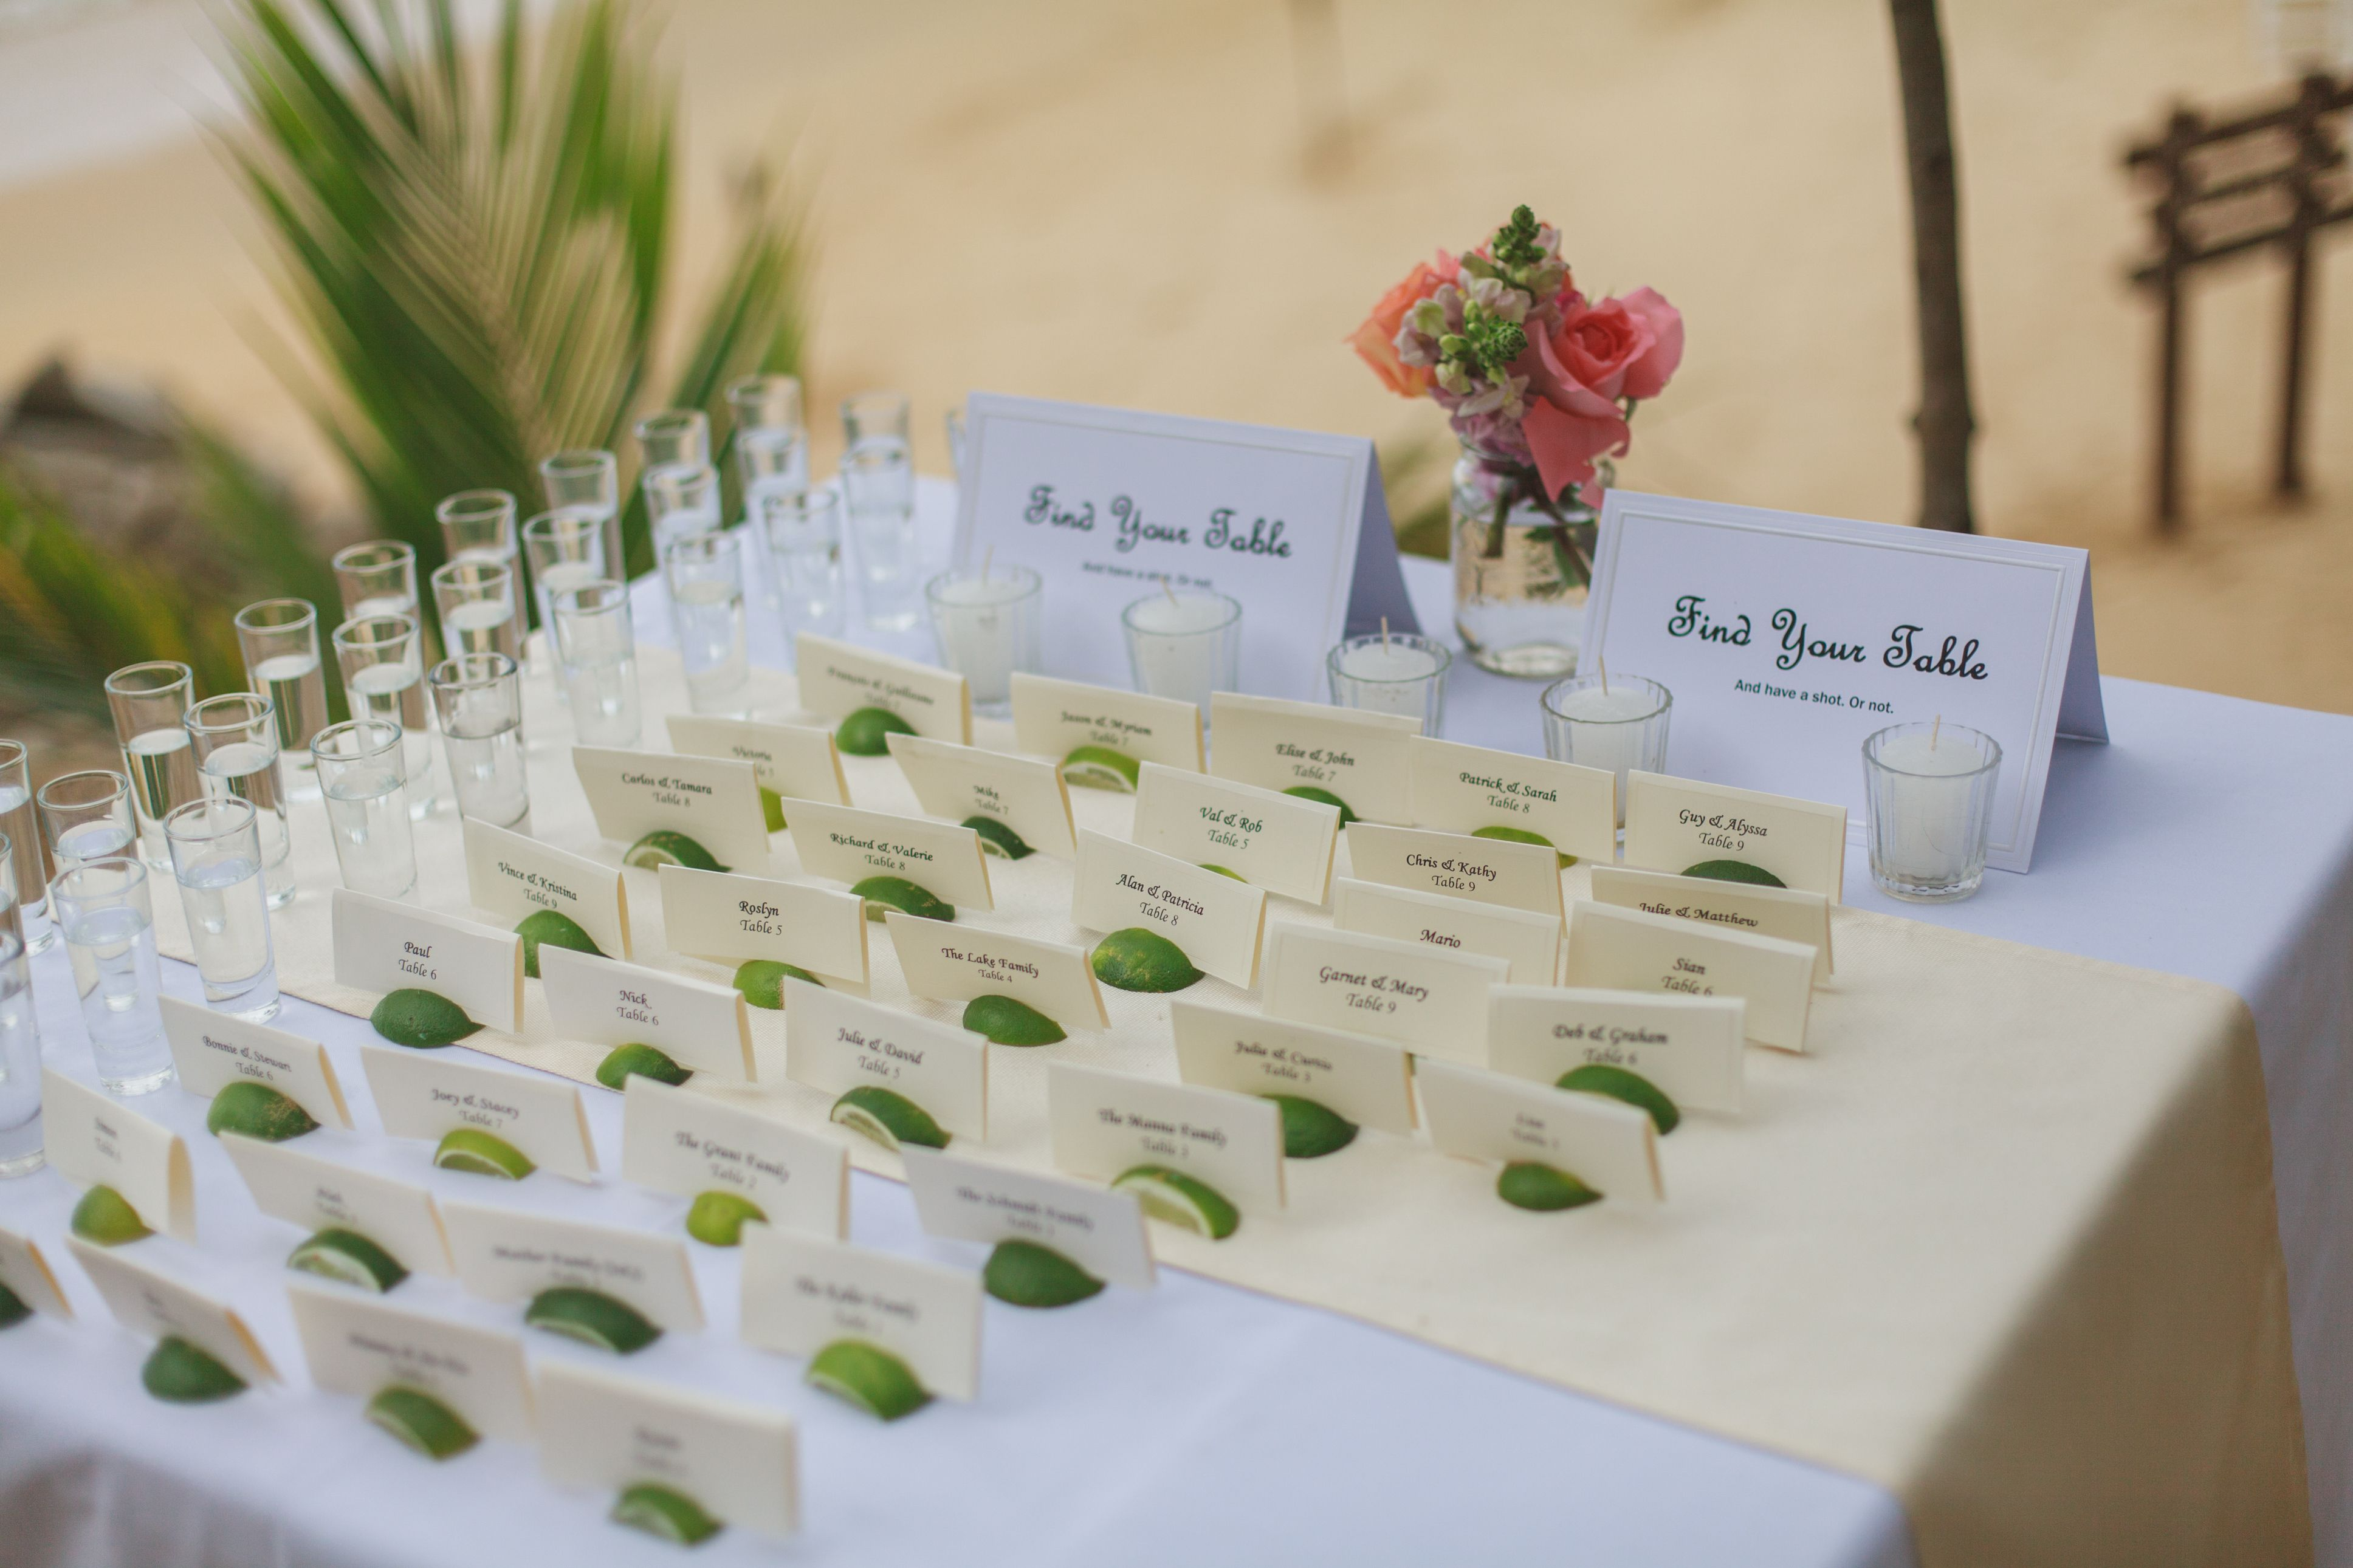 Optional Tequila Shot Amp Limes As A Seating Chart Las